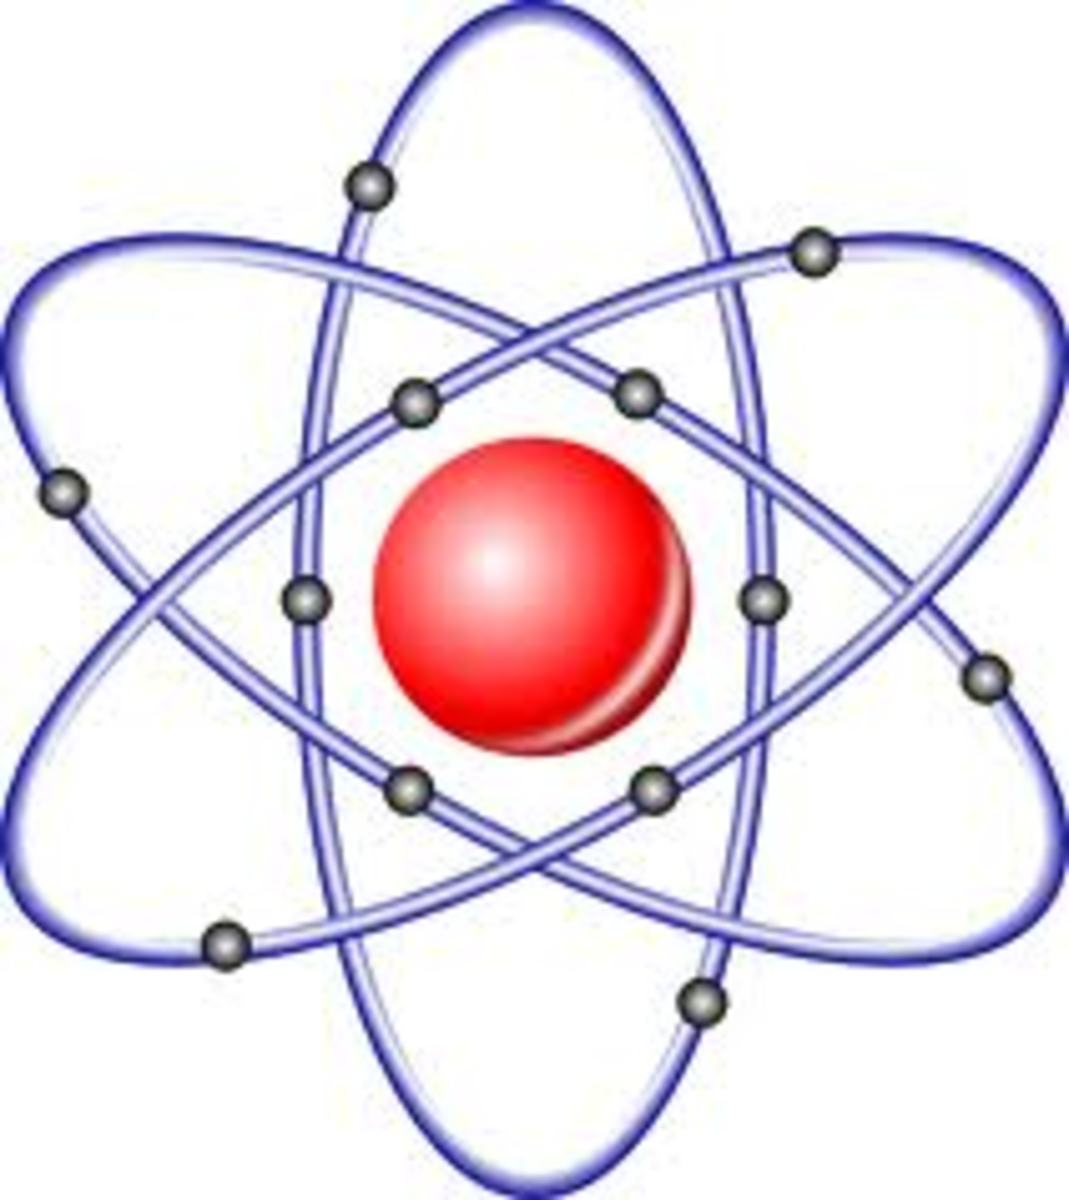 The atom was thought to be the smallest divisible particle. The atom is a basic unit of matter that has a dense central nucleus surrounded by electrons